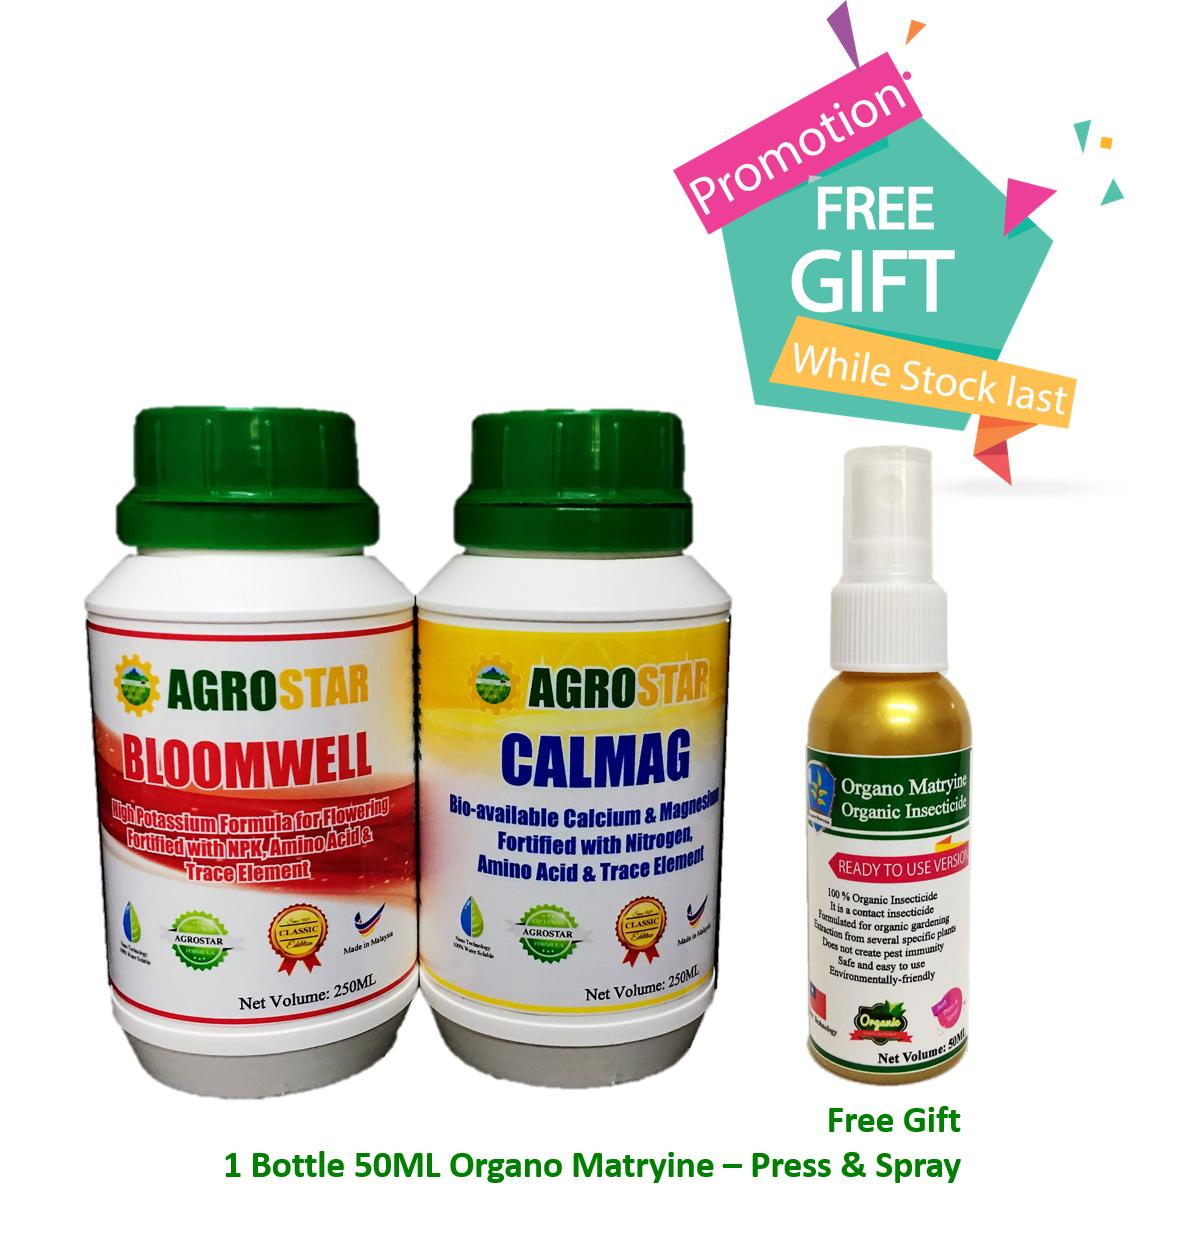 AGROSTAR – Bloomwell (High Potassium formula for flowering fortified with N P K, Amino Acid and TE) & Calmag (Bio-available Calcium and Magnesium Fortified with Nitrogen, Amino acid and TE ) Liquid Fertilizer Mini Pack 2 x 250ML Plus Free Gift